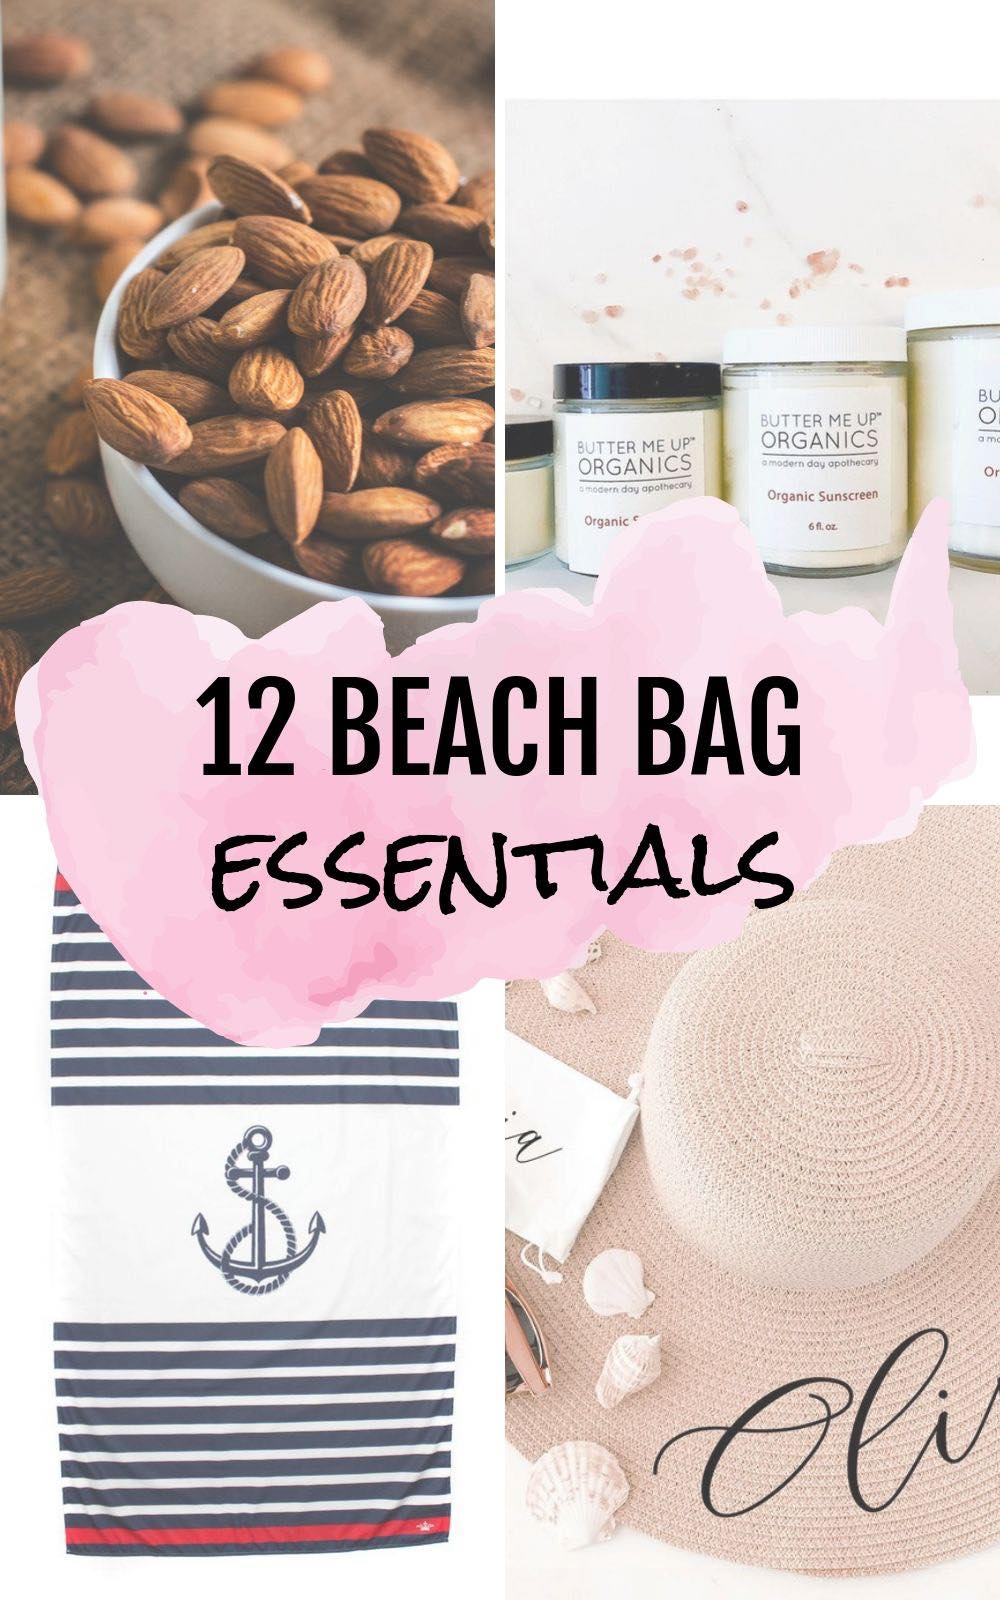 12 Beach Bag Essentials to pack this summer